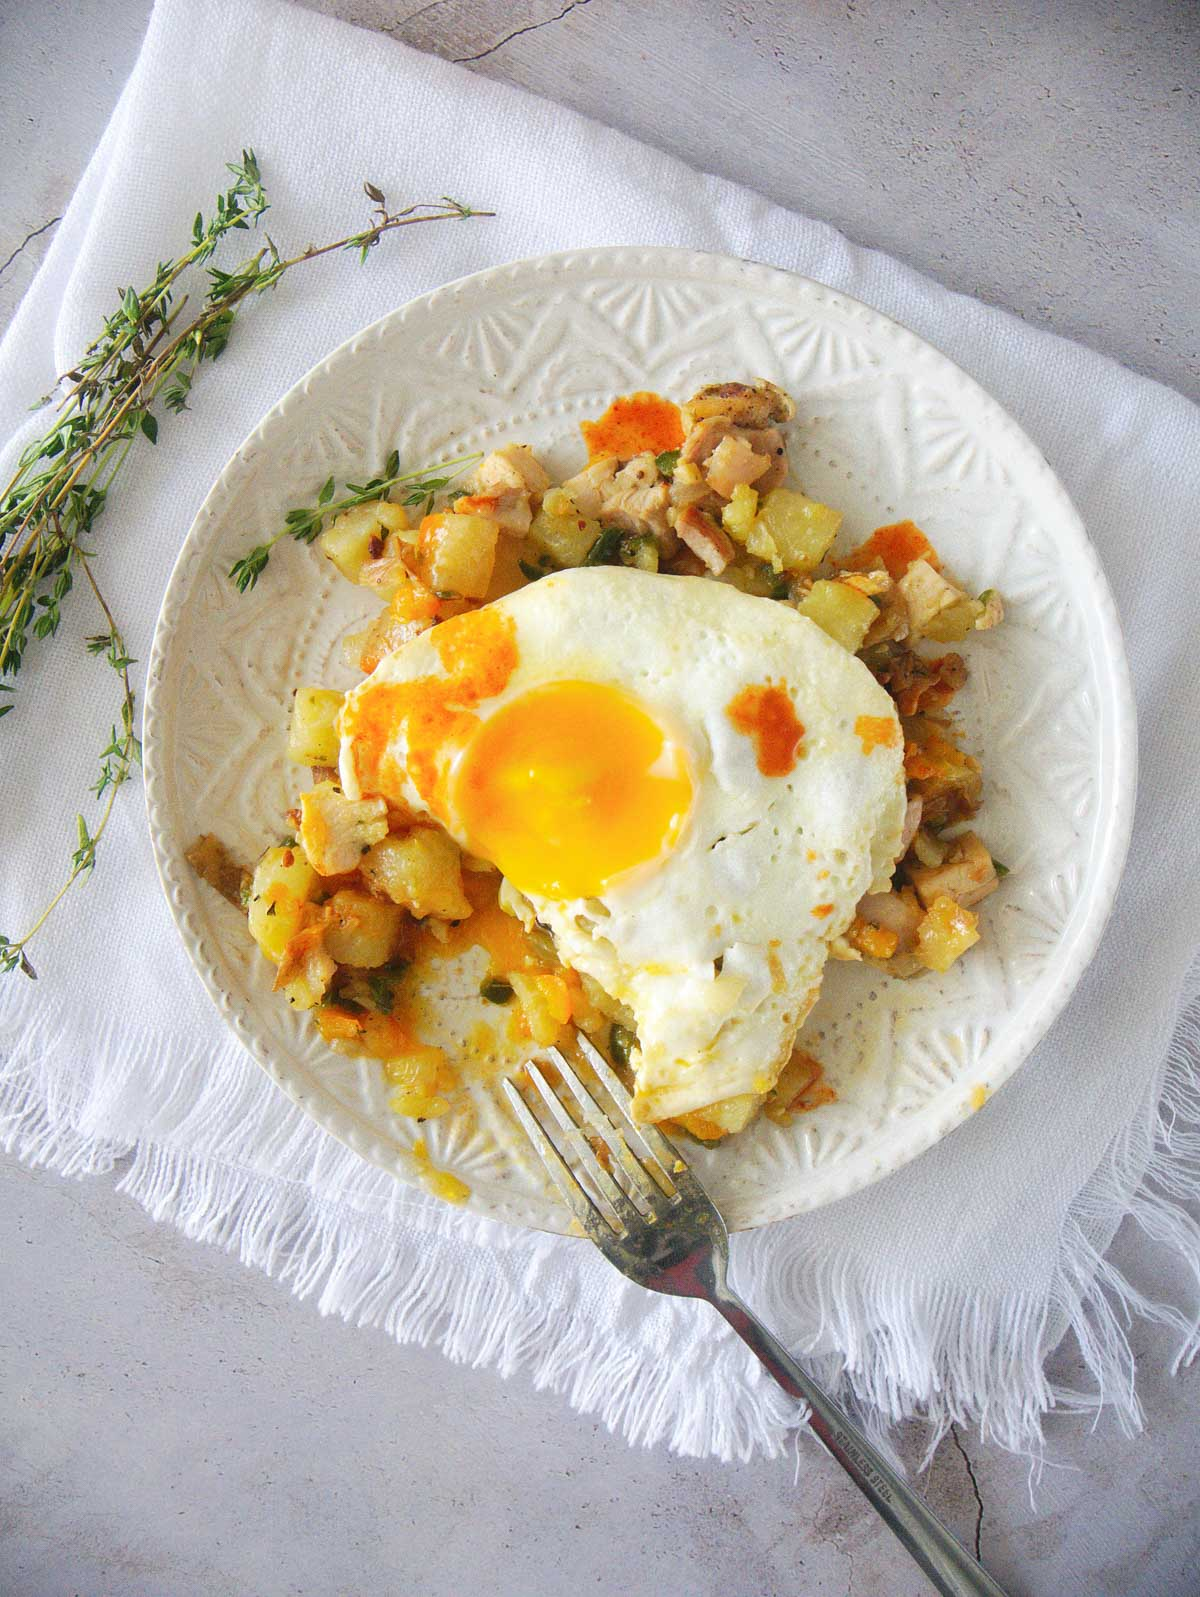 Chicken hash topped with a fried egg and a dash of hot sauce.